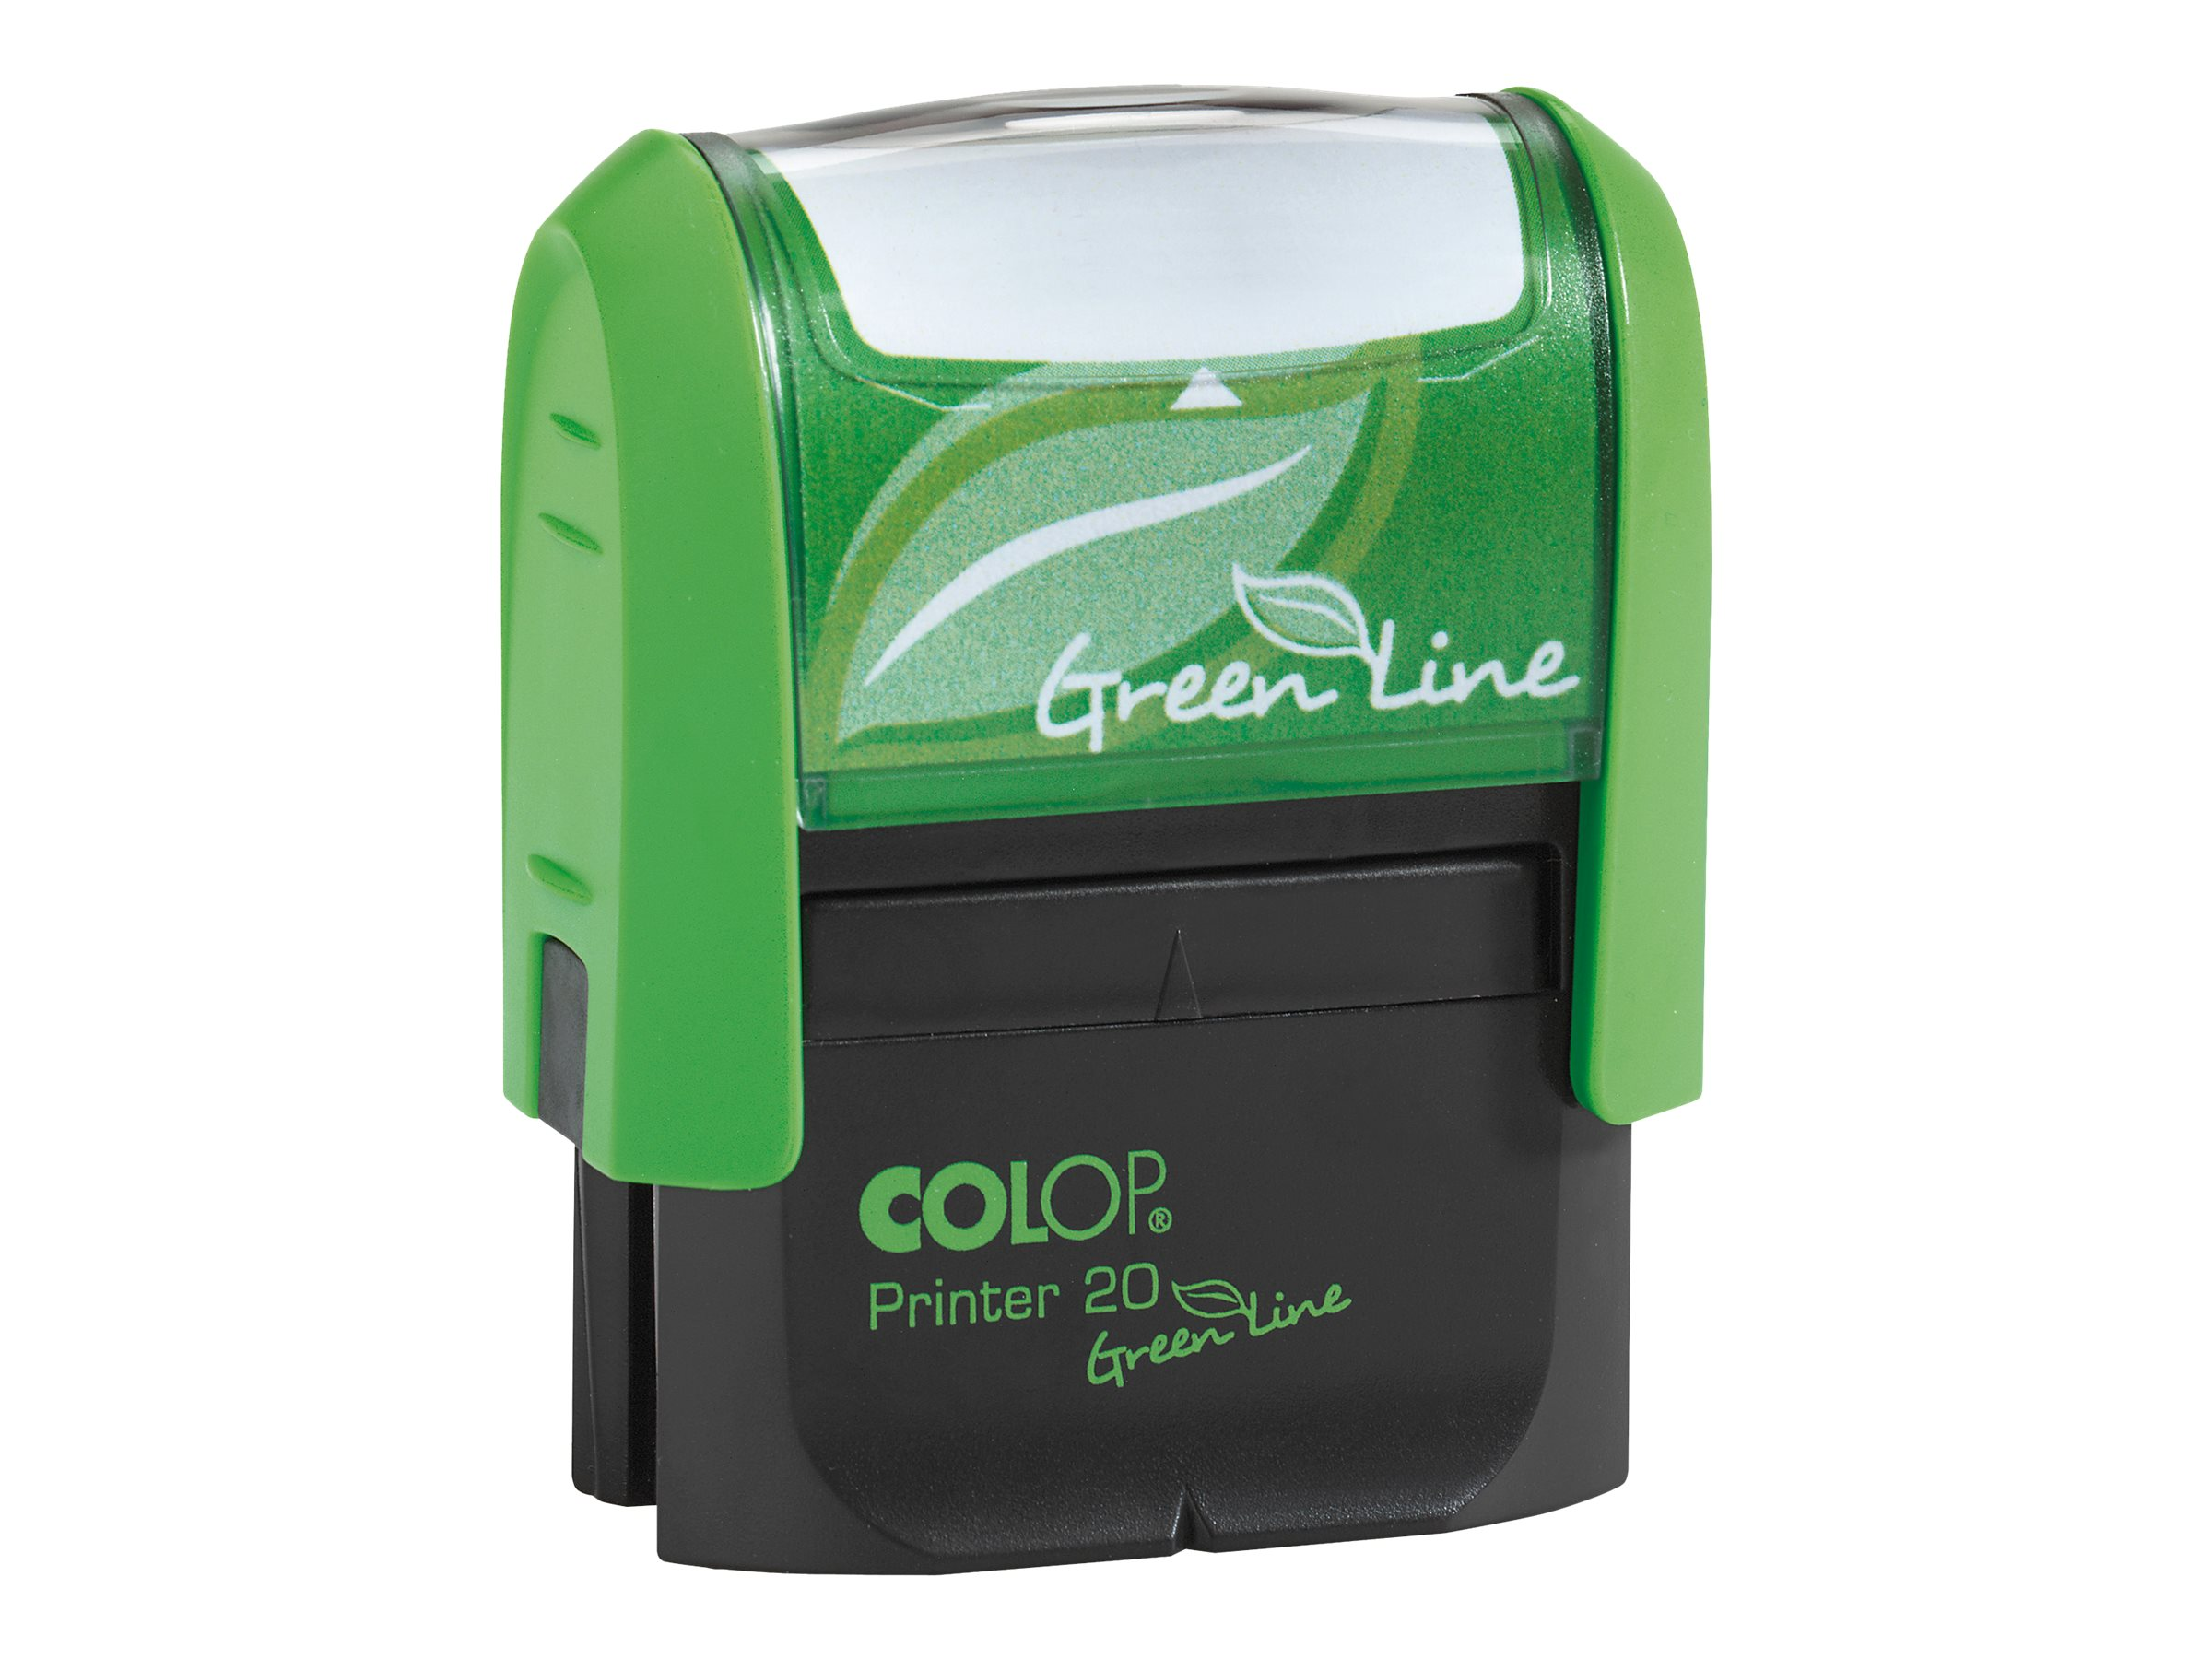 Colop - Tampon Printer 20 Green Line - formule commerciale